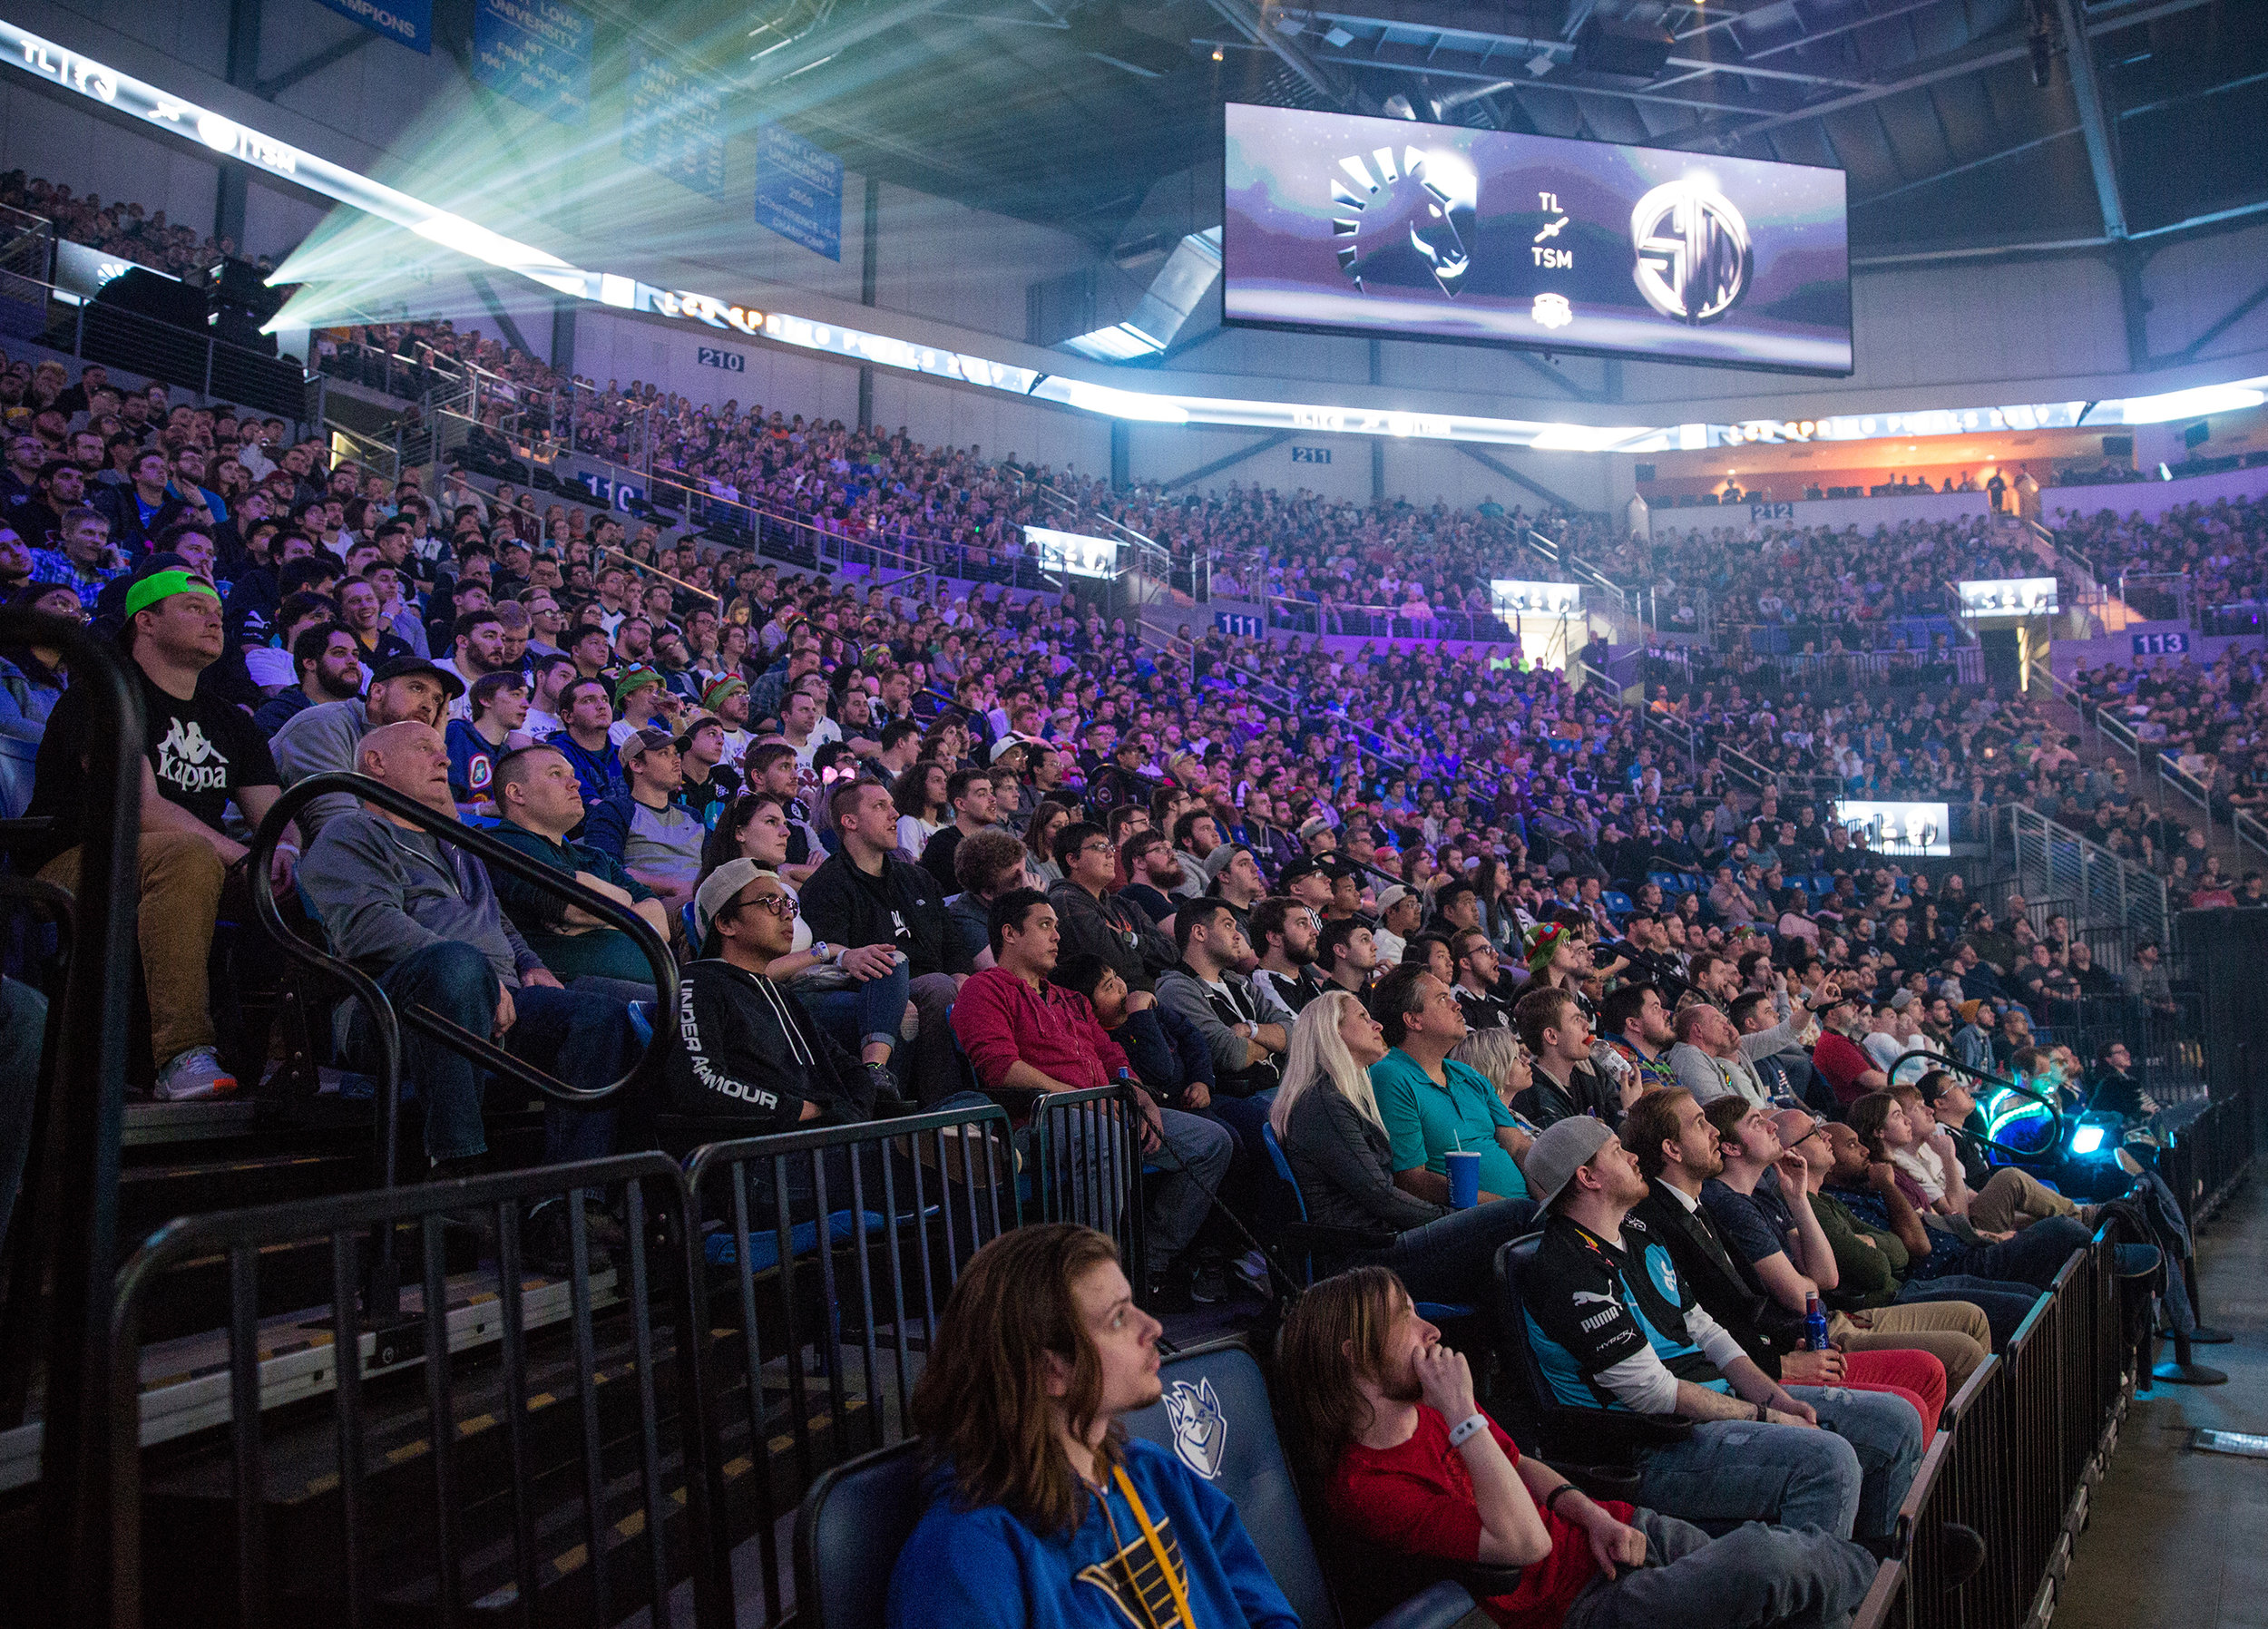 ST LOUIS, MO - APRIL 13: Crowd of fans mesmerized at LCS Spring Finals at Chaifetz Arena on April 13, 2019 in St Louis, Missouri. Photo by David Doran/ESPAT Media